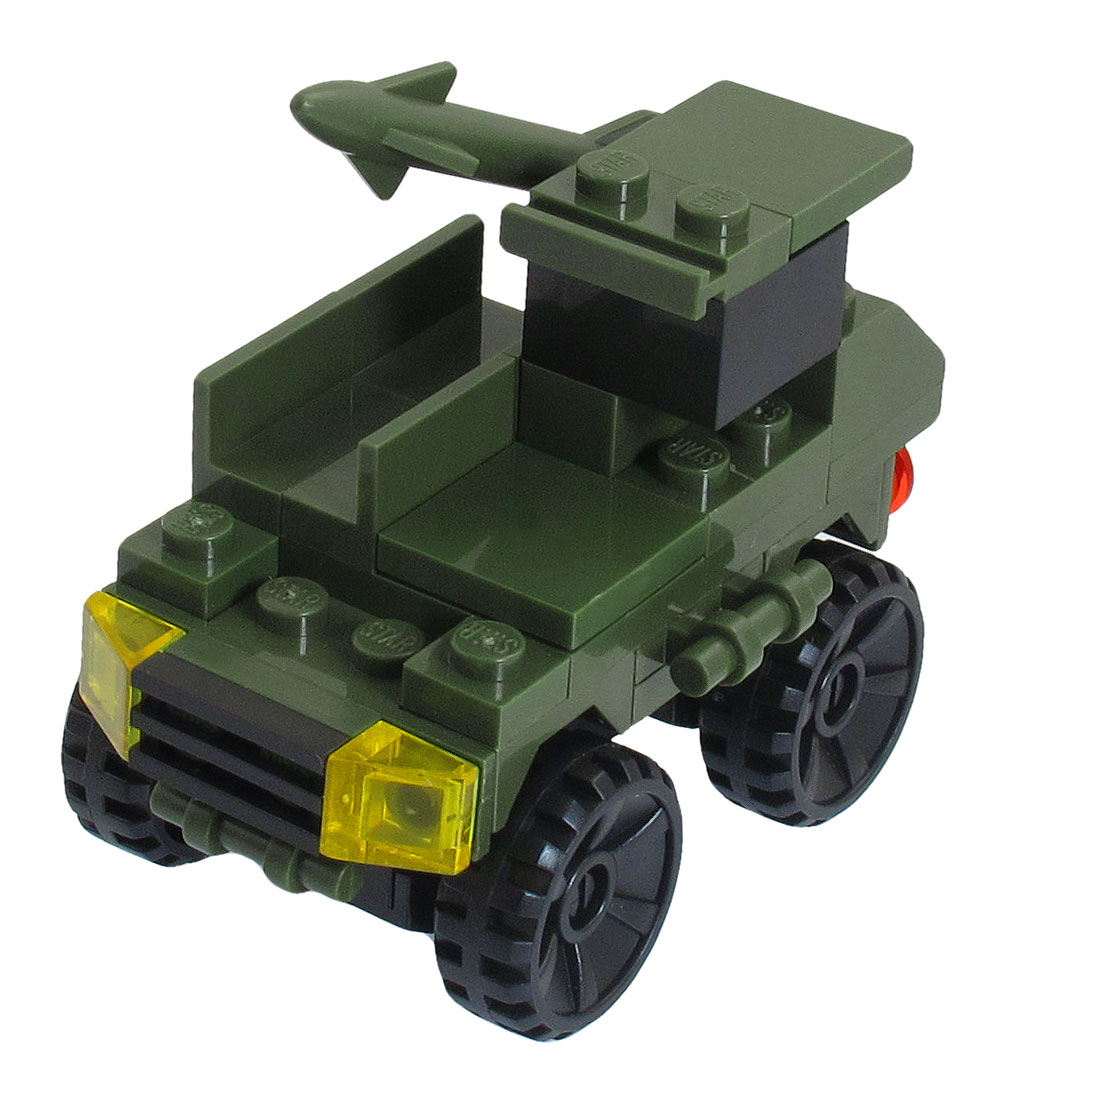 Plastic-Army-Green-Assembling-Military-Tank-Toy-for-Children